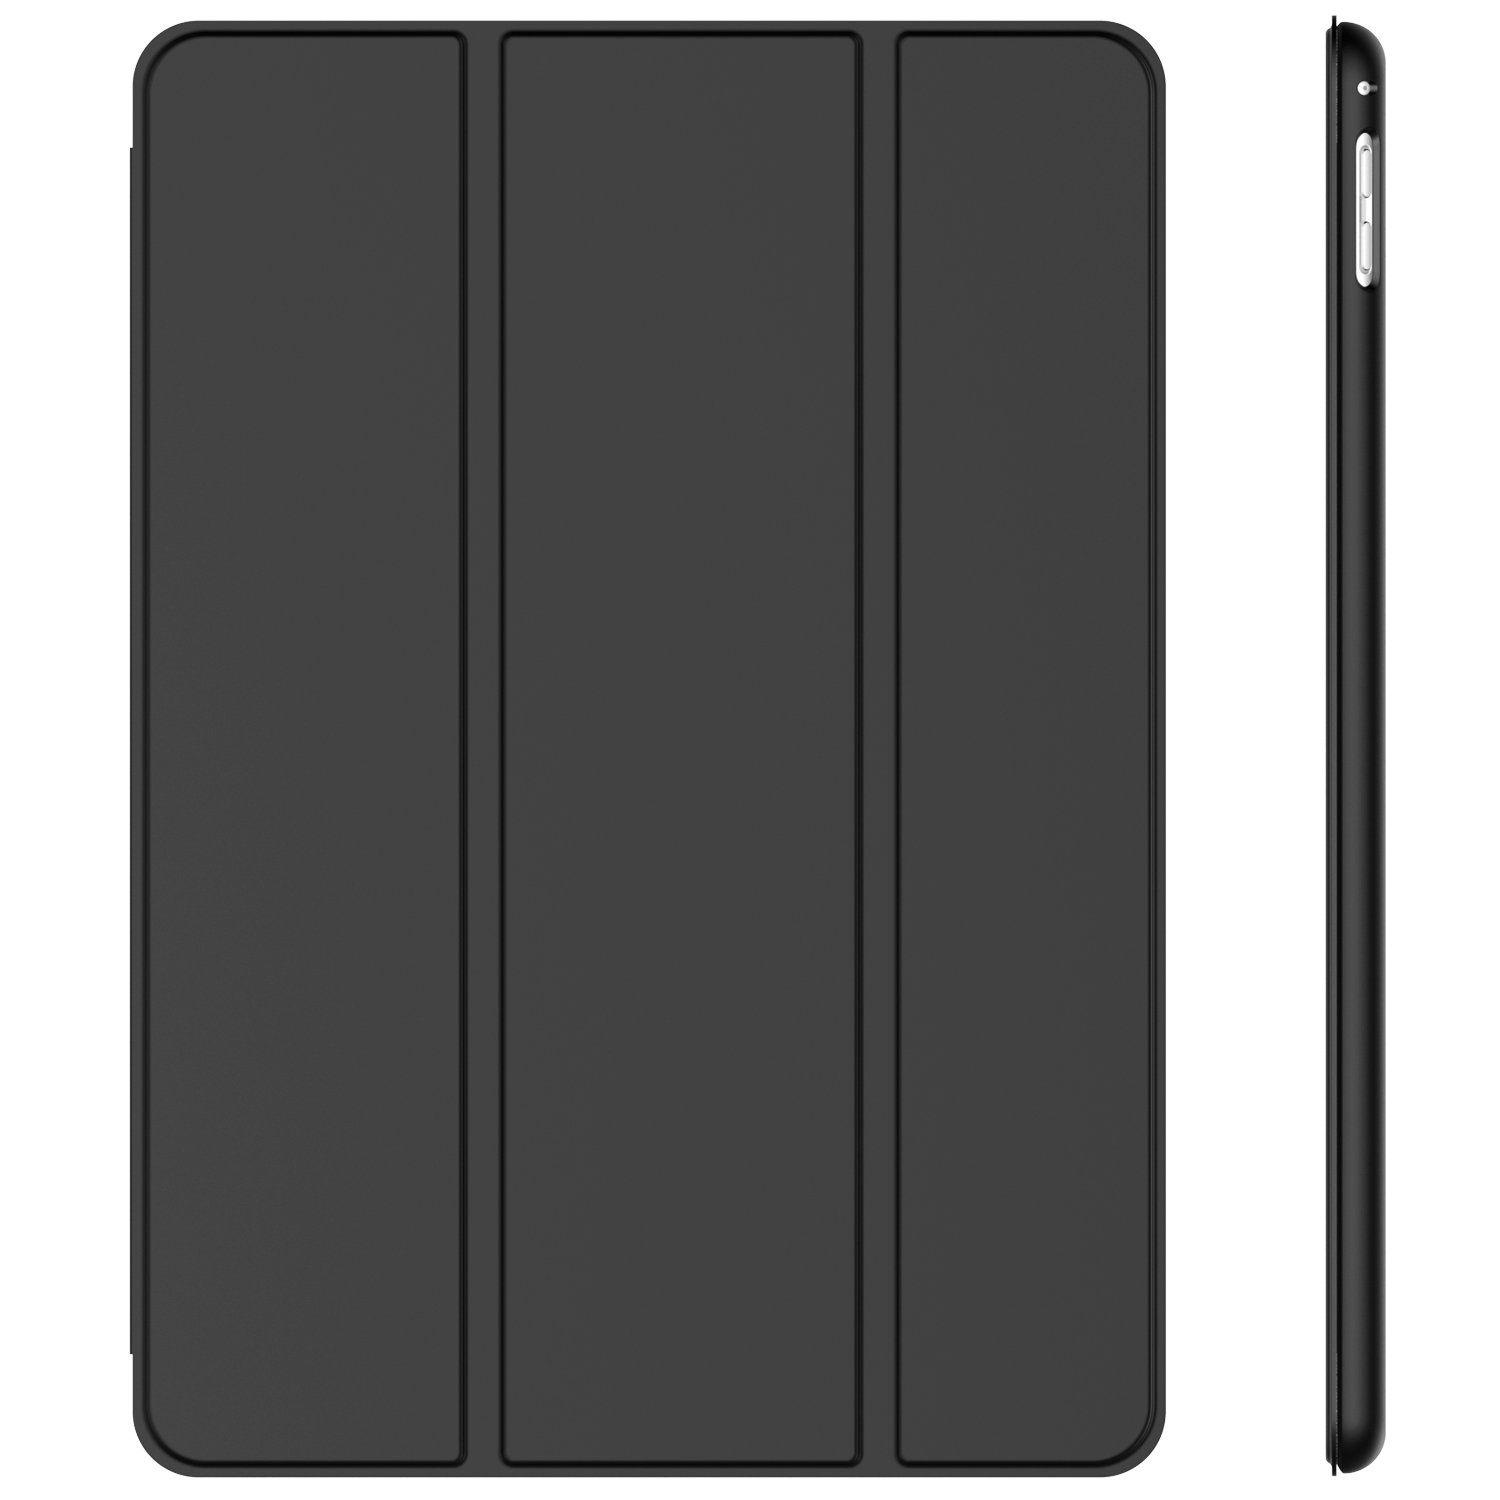 JETech Case for Apple iPad Pro 9.7-Inch (2016 Model), Smart Cover Auto Wake/Sleep, Black